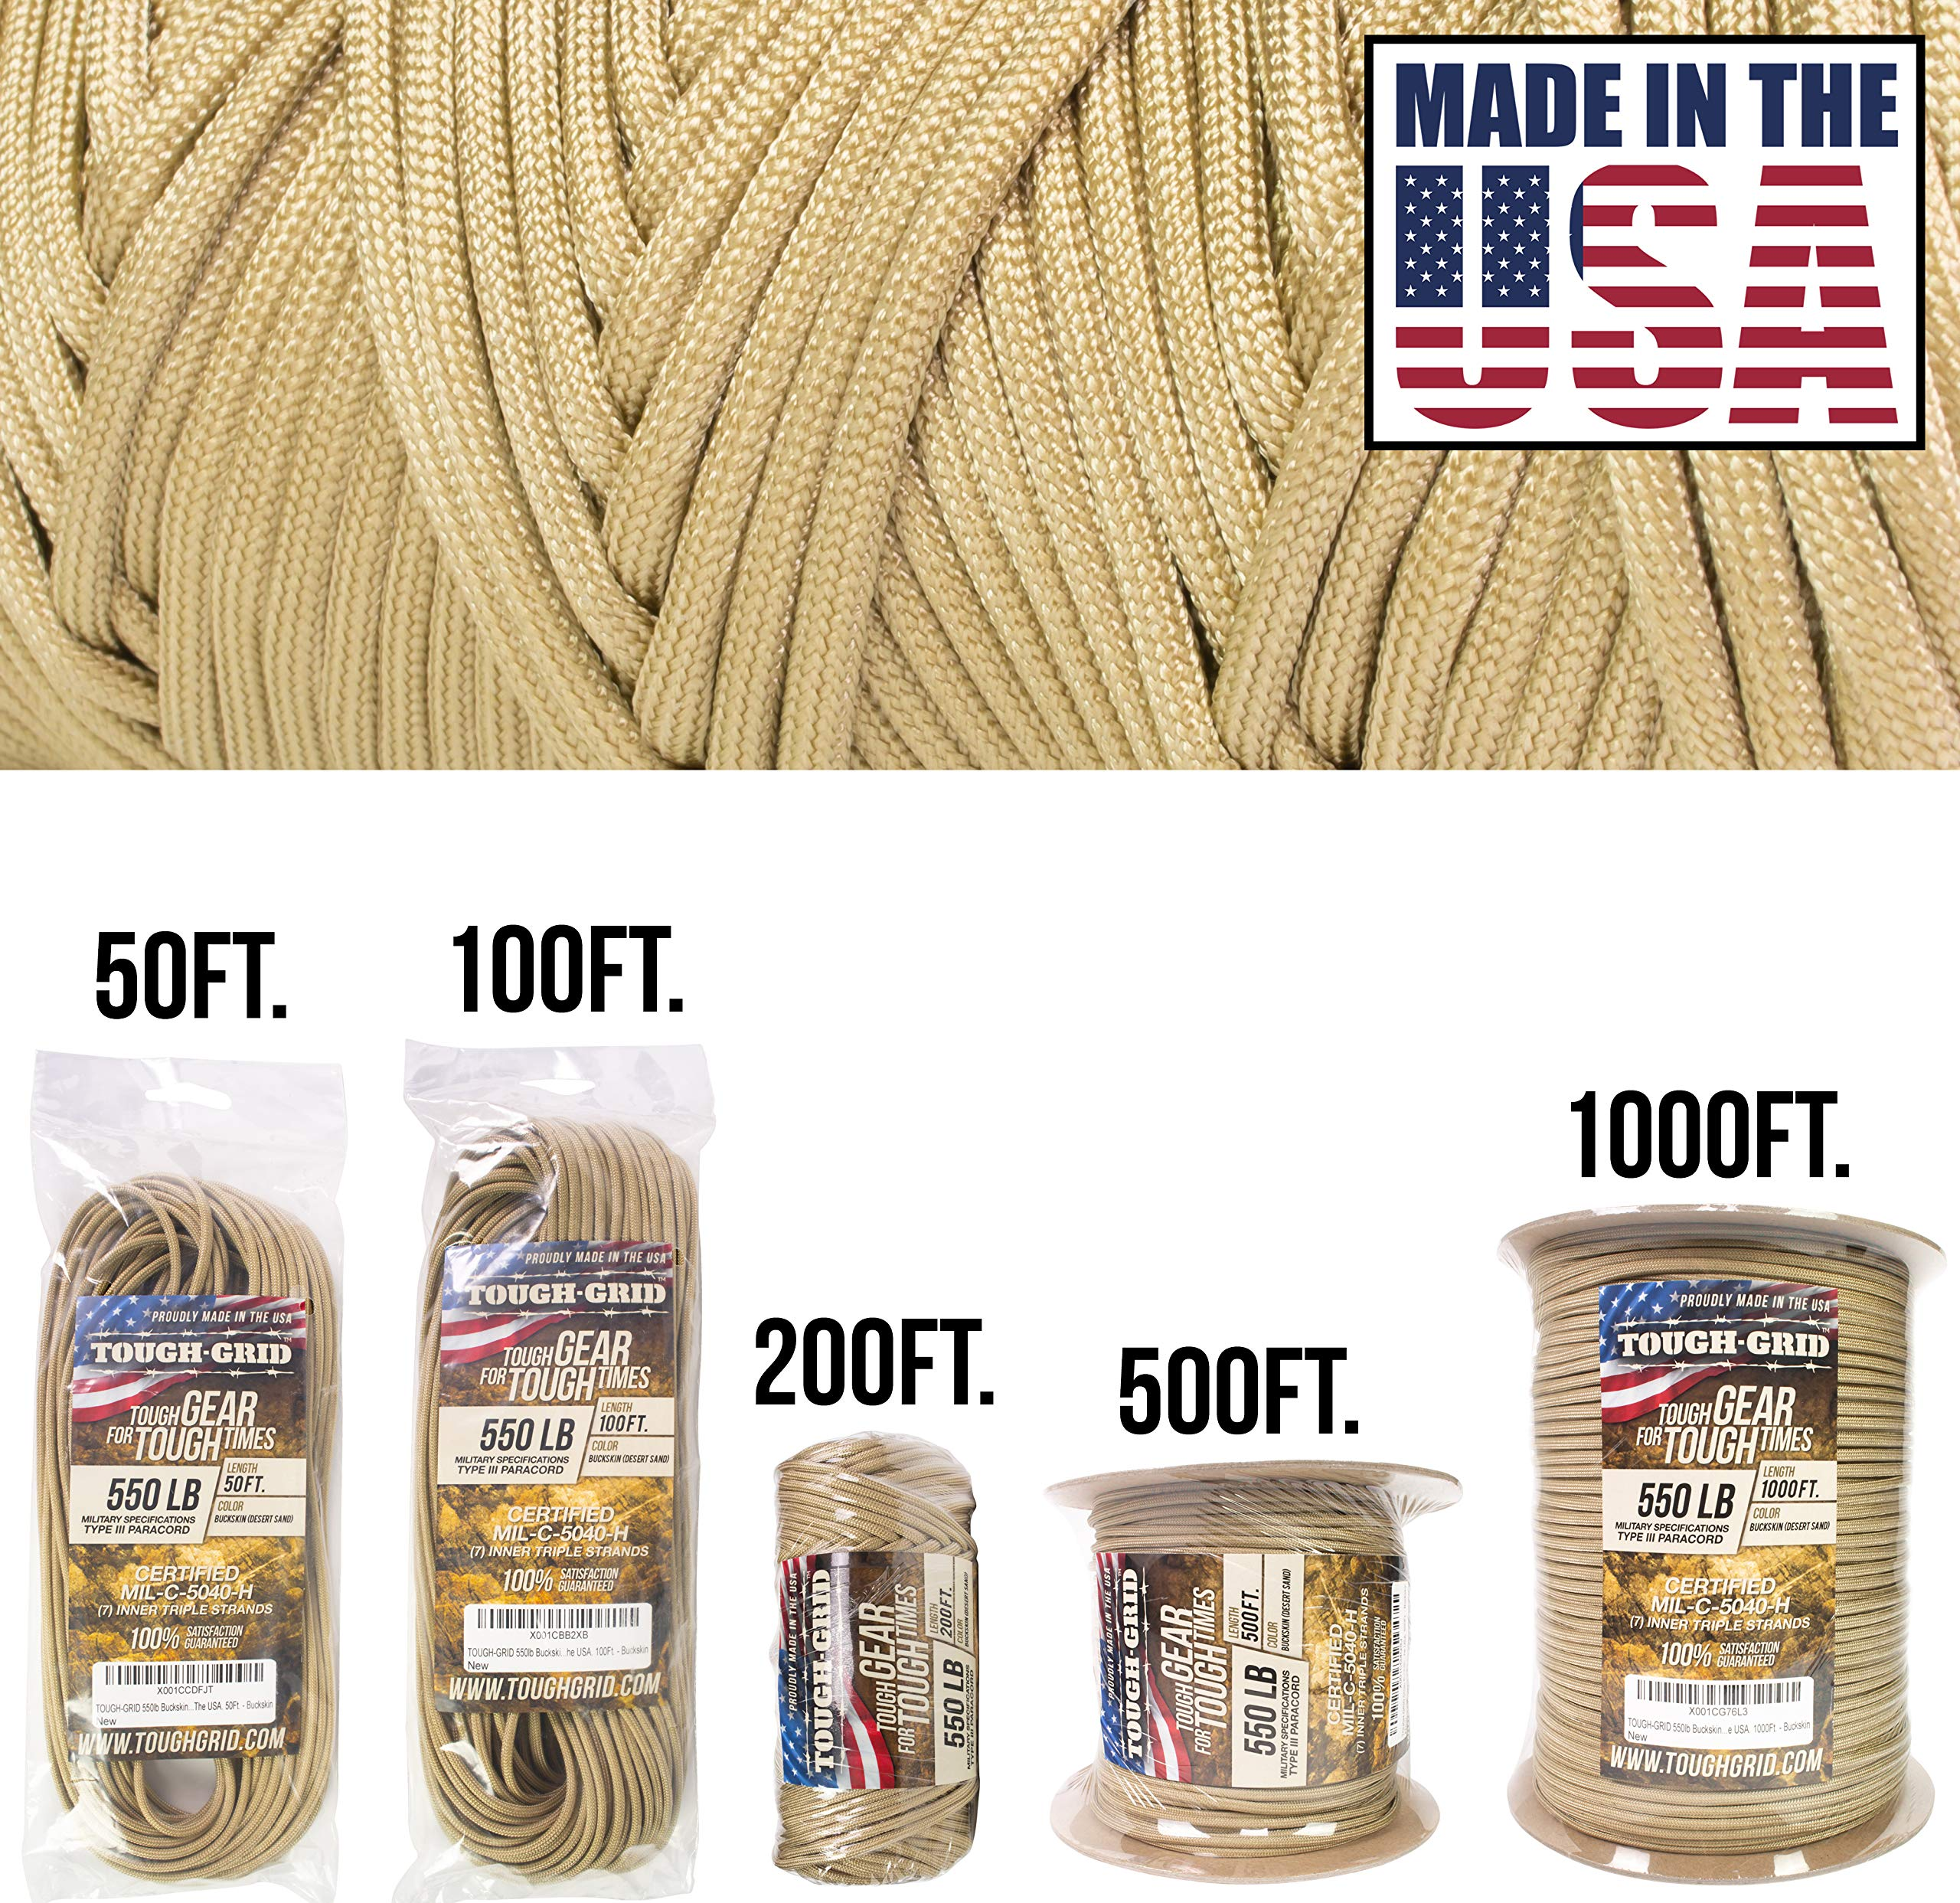 TOUGH-GRID 550lb Buckskin (Desert Sand) Paracord/Parachute Cord - 100% Nylon Genuine Mil-Spec Type III Paracord Used by The US Military - (MIL-C-5040-H) - Made in The USA. 50Ft. - Buckskin by TOUGH-GRID